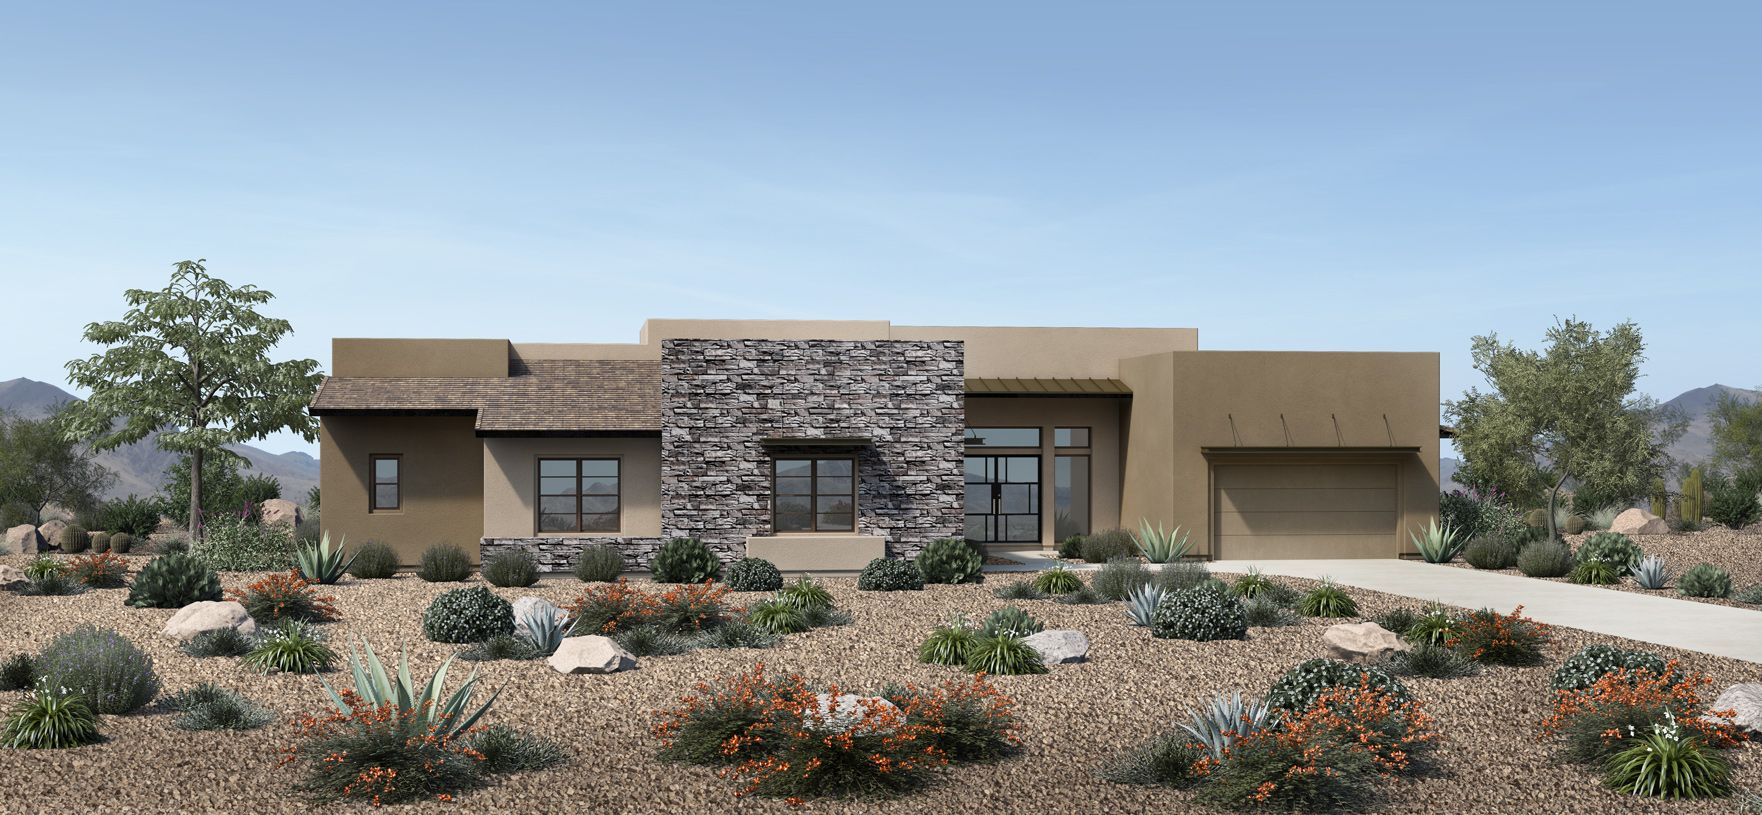 Elevation Image:Desert Contemporary